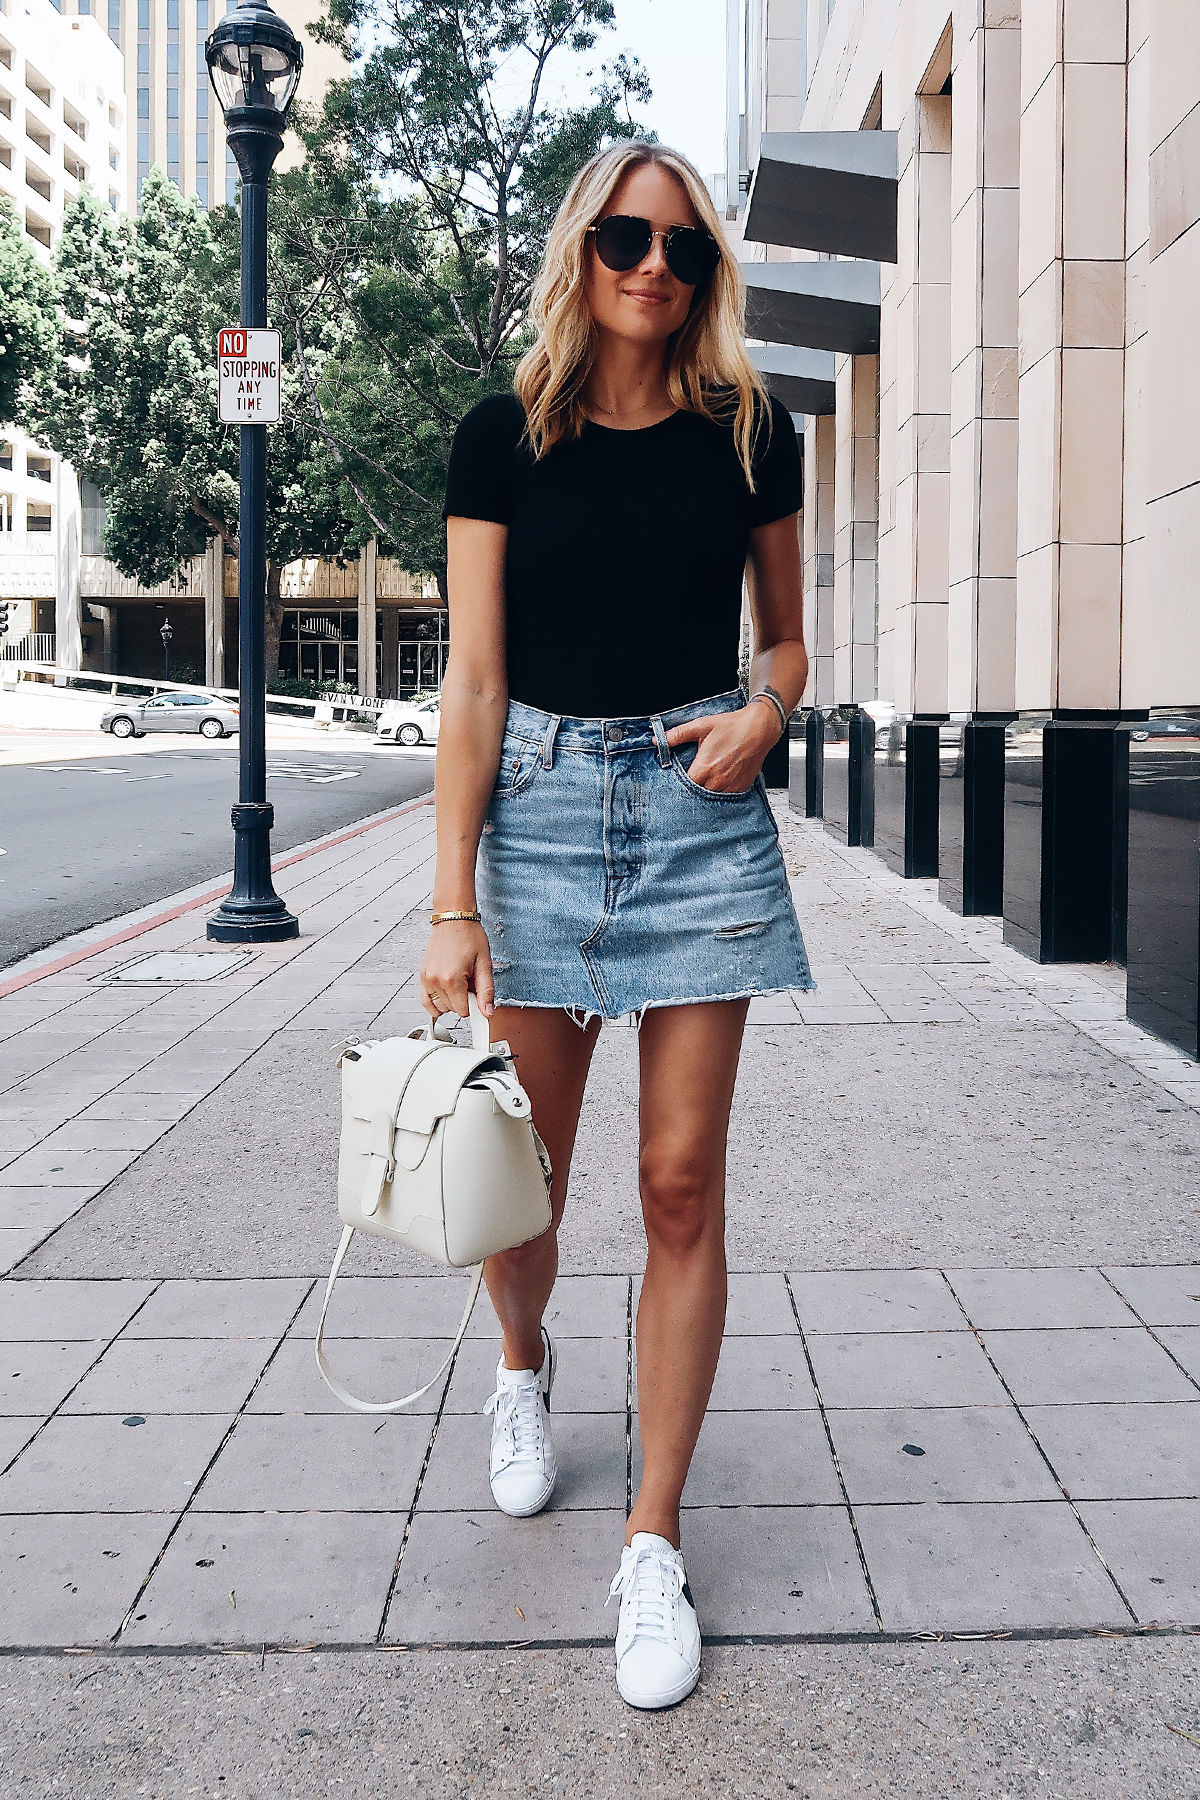 054938fcf71 Blonde Woman Wearing Short Sleeve Black Bodysuit Levis Denim Skirt Nike  White Sneakers Senreve White Mini